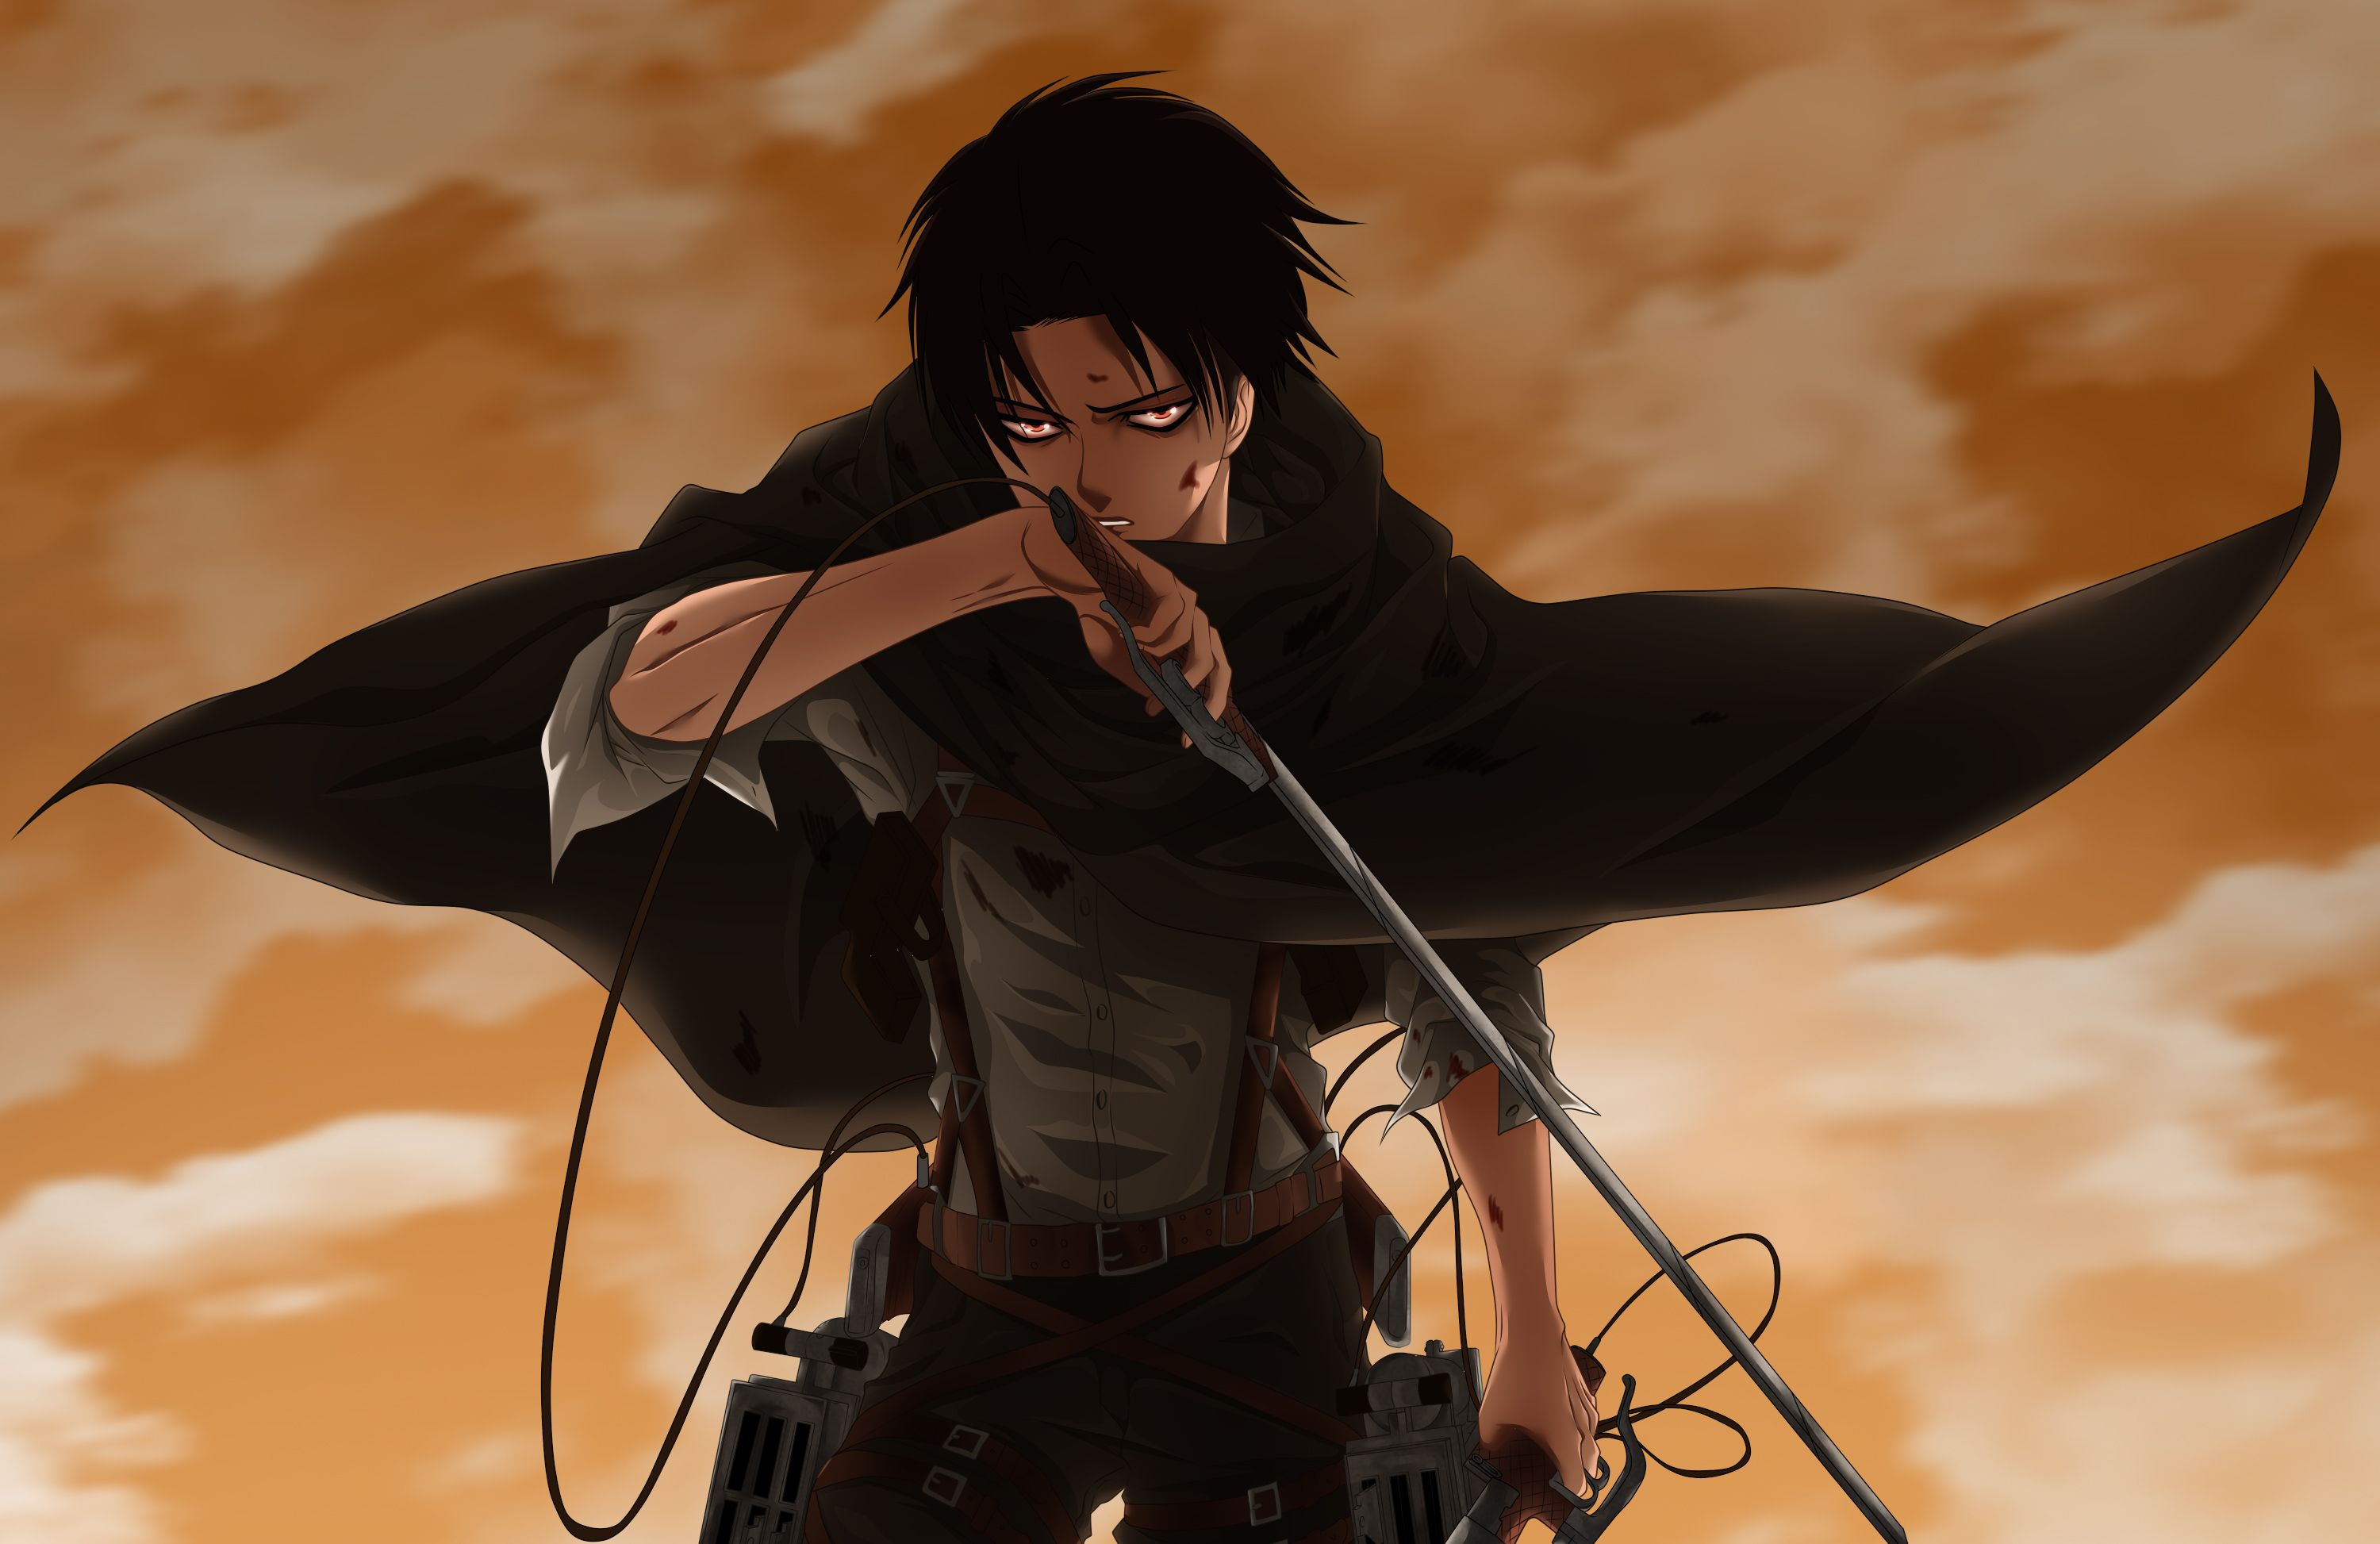 Attack on titan may be popular but how much do you actually know about the series? Attack On Titan Anime 4k PC Wallpapers - Wallpaper Cave